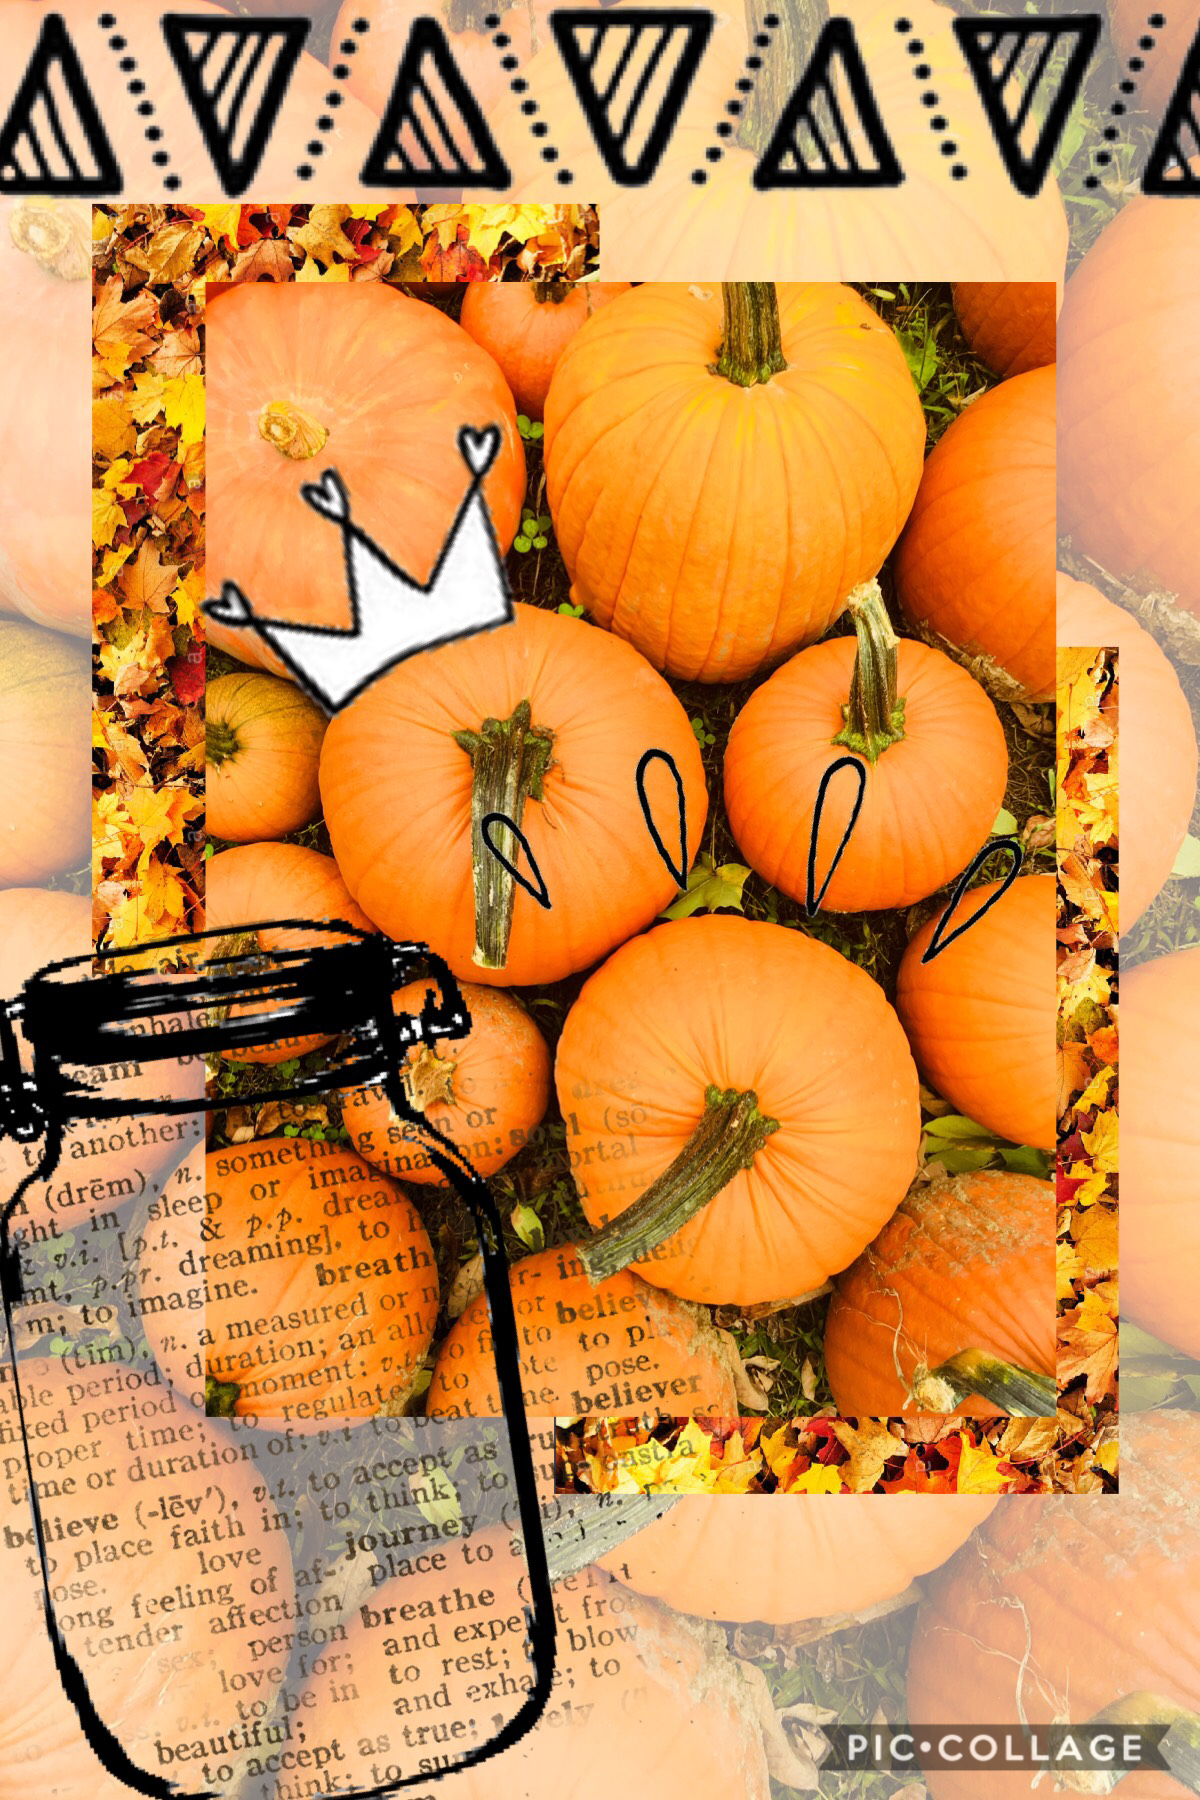 I took this picture of all the pumpkins, I thought it looked artsy and autumnal!